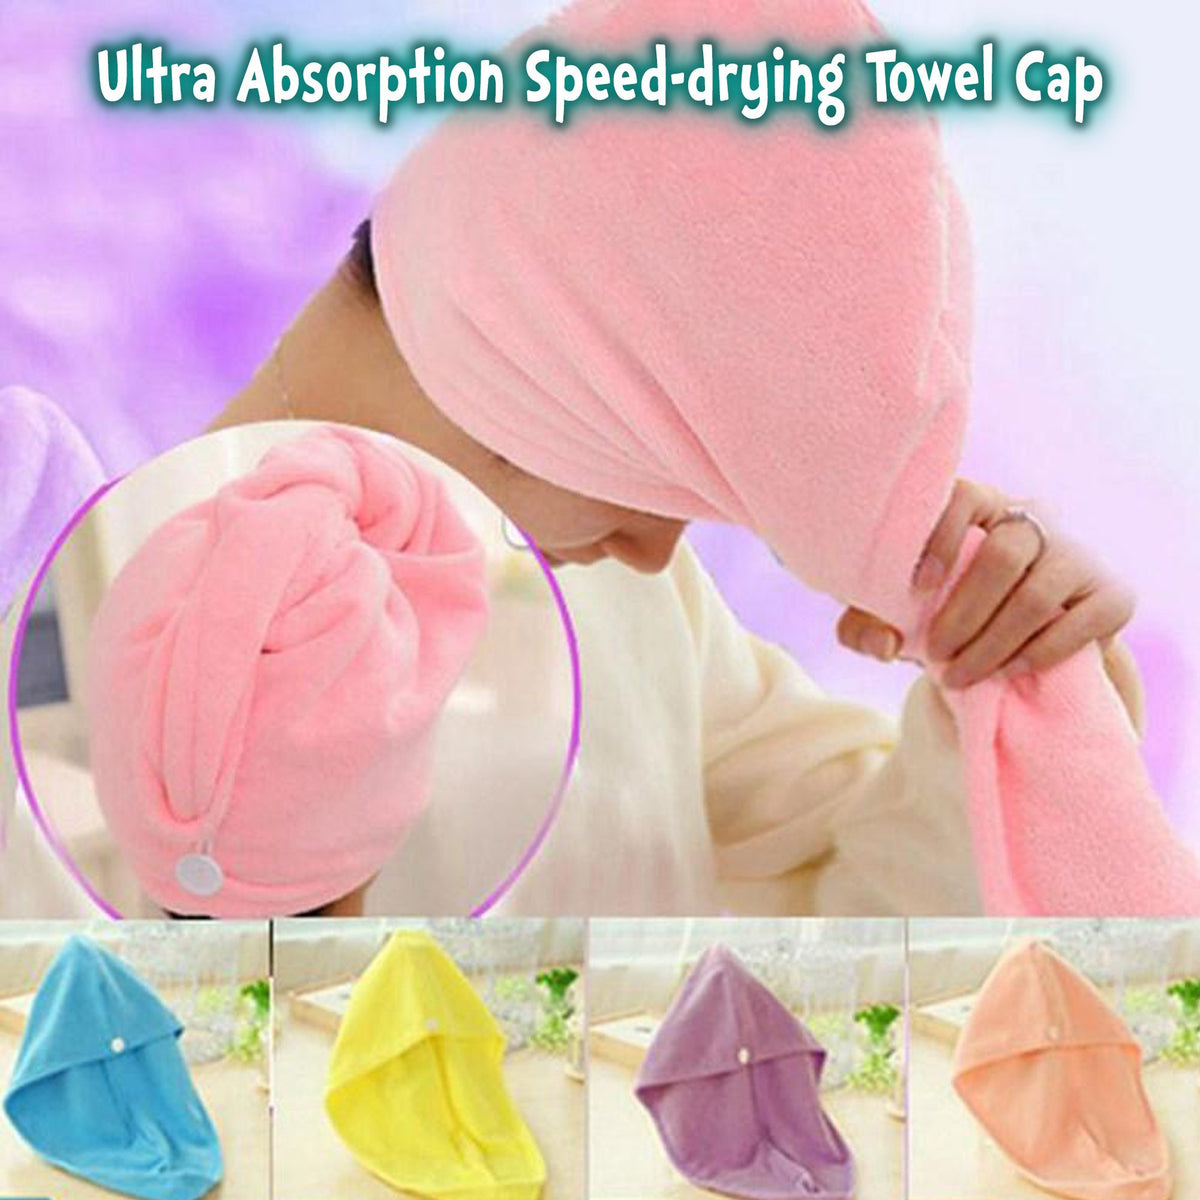 Ultra Absorption Speed-drying Towel Cap